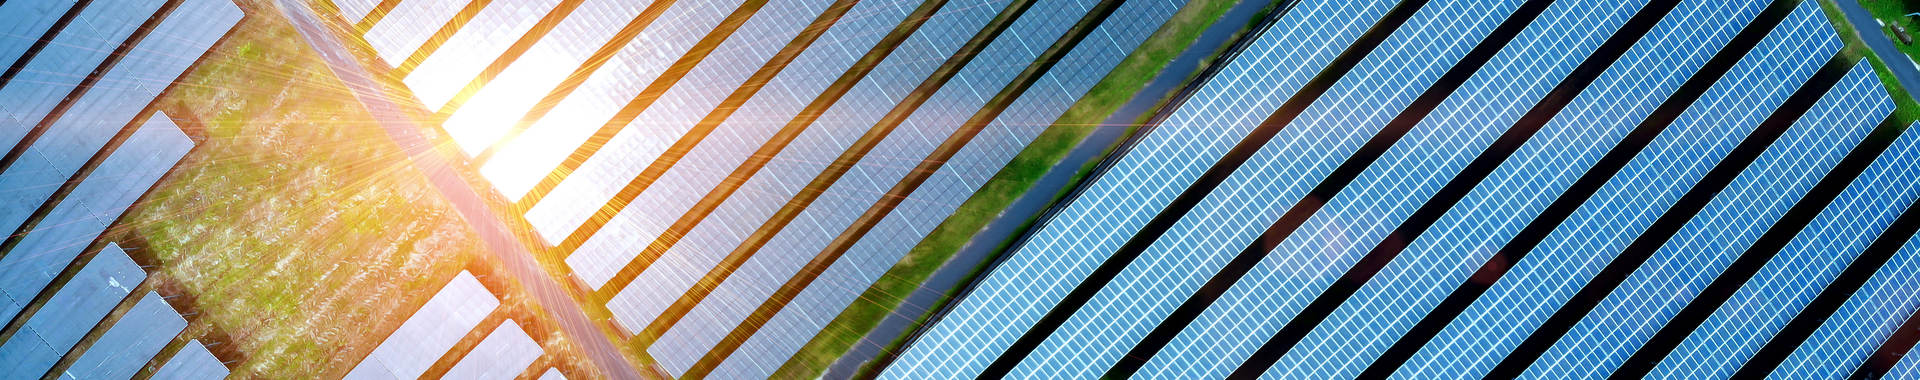 Aerial view of solar cell field